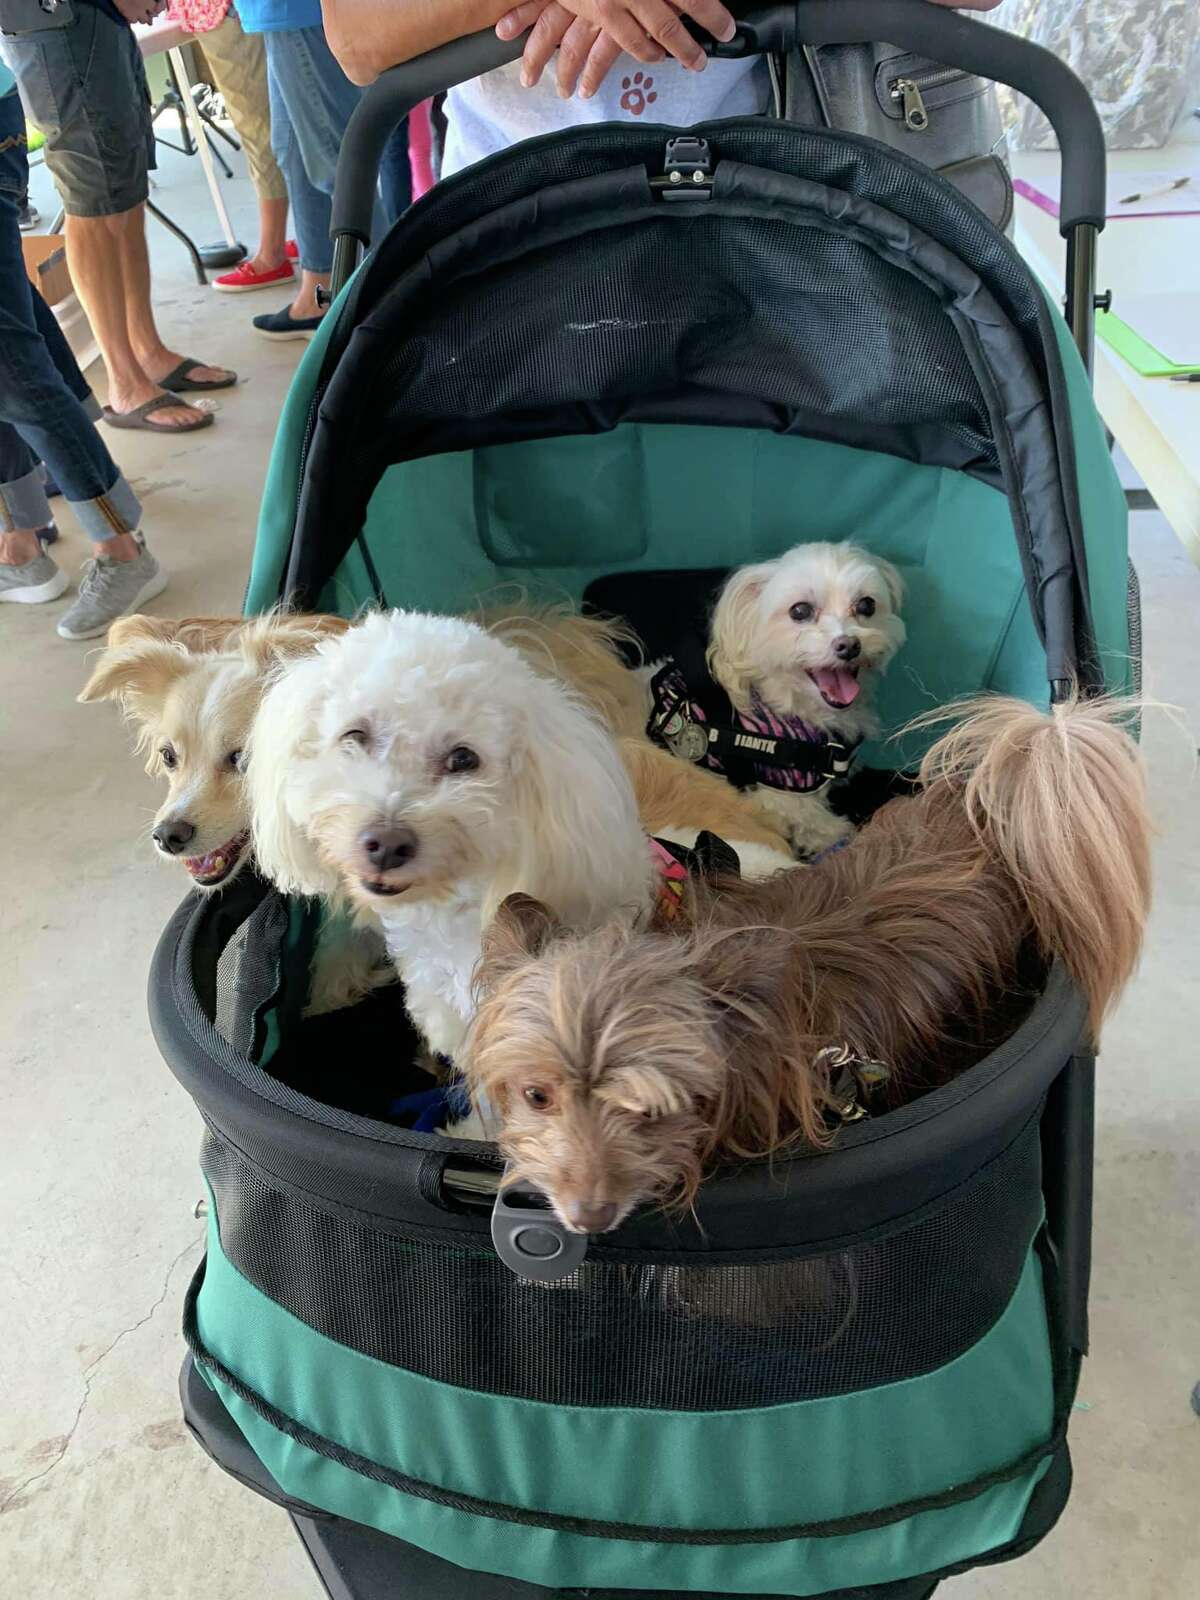 Dogs will be everywhere at Barktoberfest, set from 10 a.m. to 3 p.m. Oct. 9 at Jackie's Brickhouse, 1053 Marina Bay Drive in Kemah. The event will feature live music, food, a silent auction, pet competitions, low-cost vaccines and microchipping, demonstrations and dog adoption opportunities. Admission is free, and proceeds help Bay Area Pet Adoptions No Kill Shelter. For more info, visit https://bityl.co/8bTk.